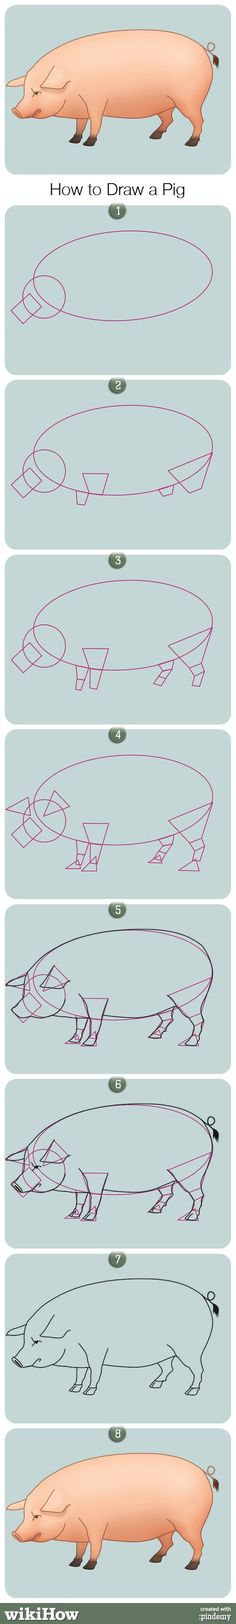 How to Draw a Pig....this is funny bc who the hell is so concerned about drawing a pig right they need to consult wiki how?!?